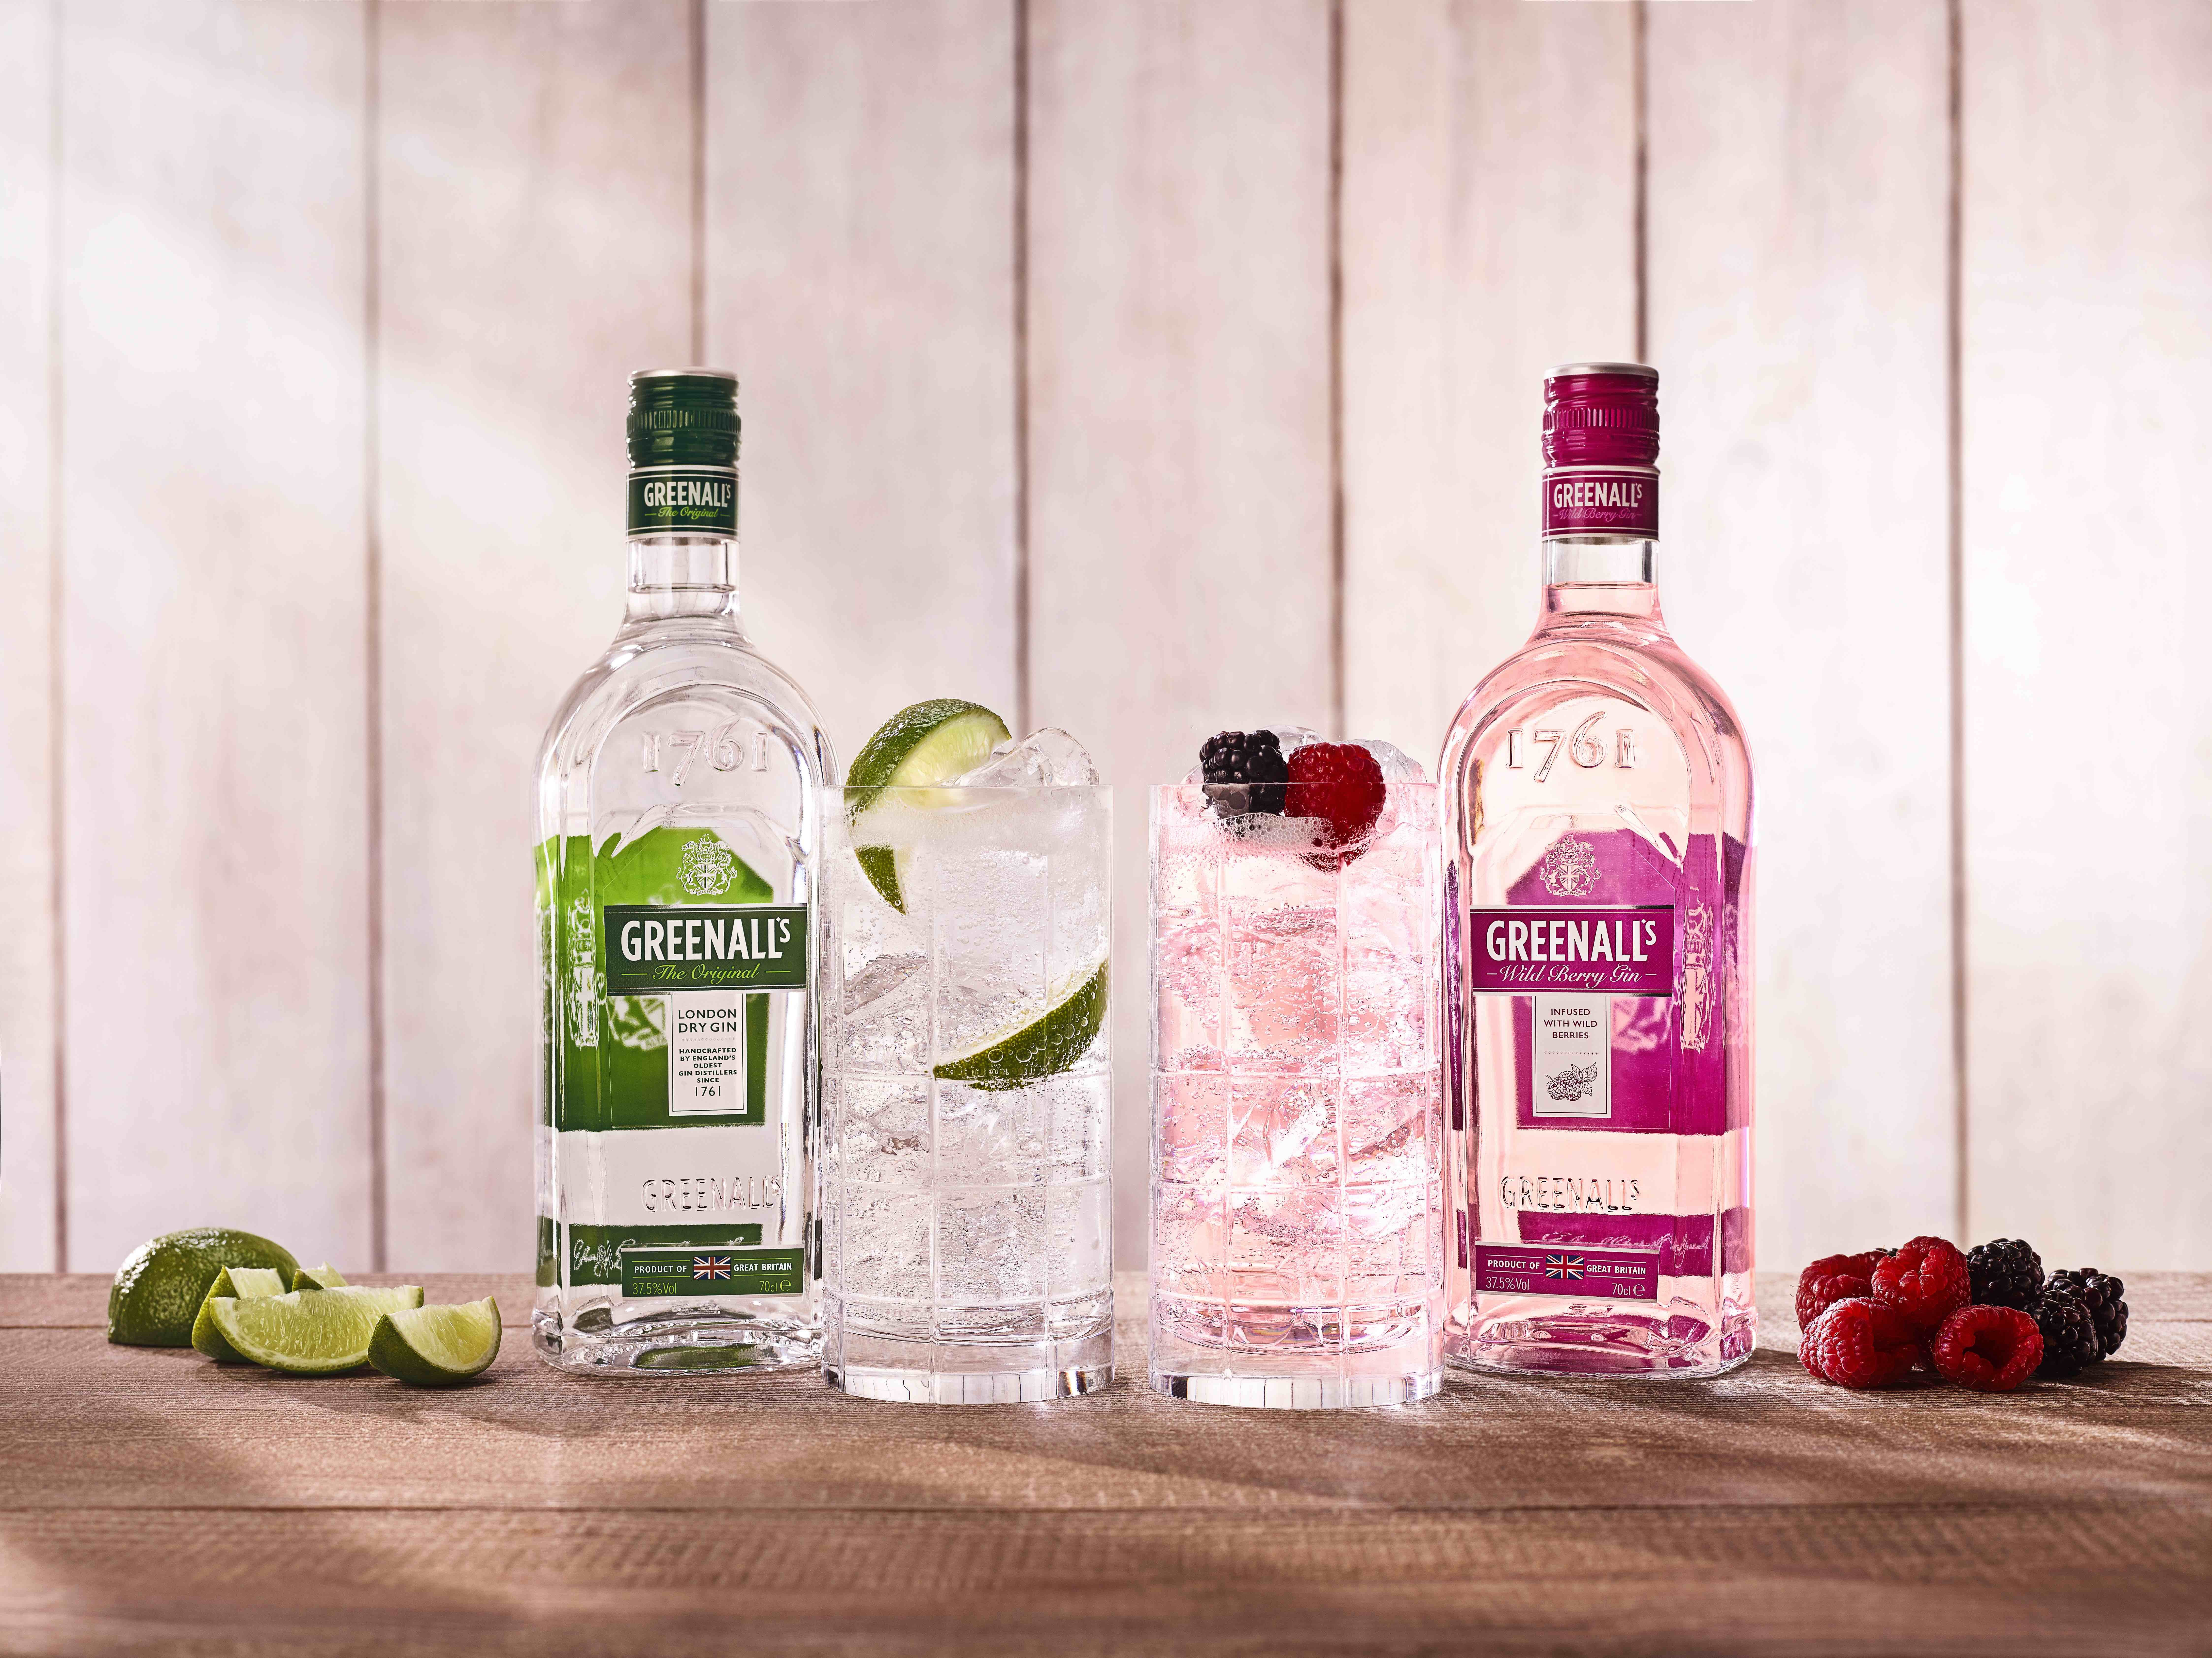 The first and original London dry gin, Greenall's available in south Africa